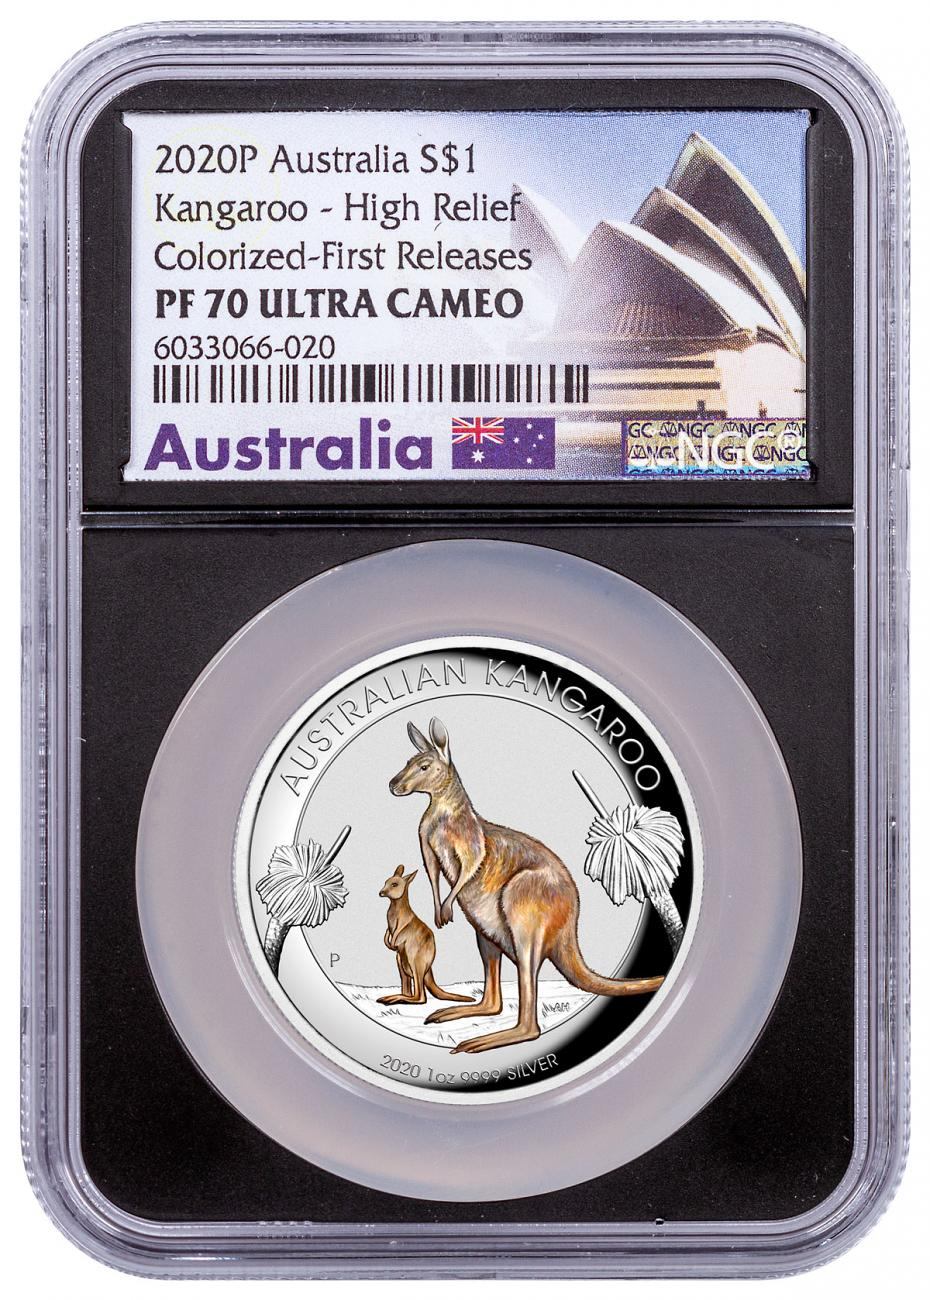 2020-P Australia Silver Kangaroo High Relief 1 oz Silver $1 Coin NGC PF70 UC FR With OGP Black Core Holder Opera House Label